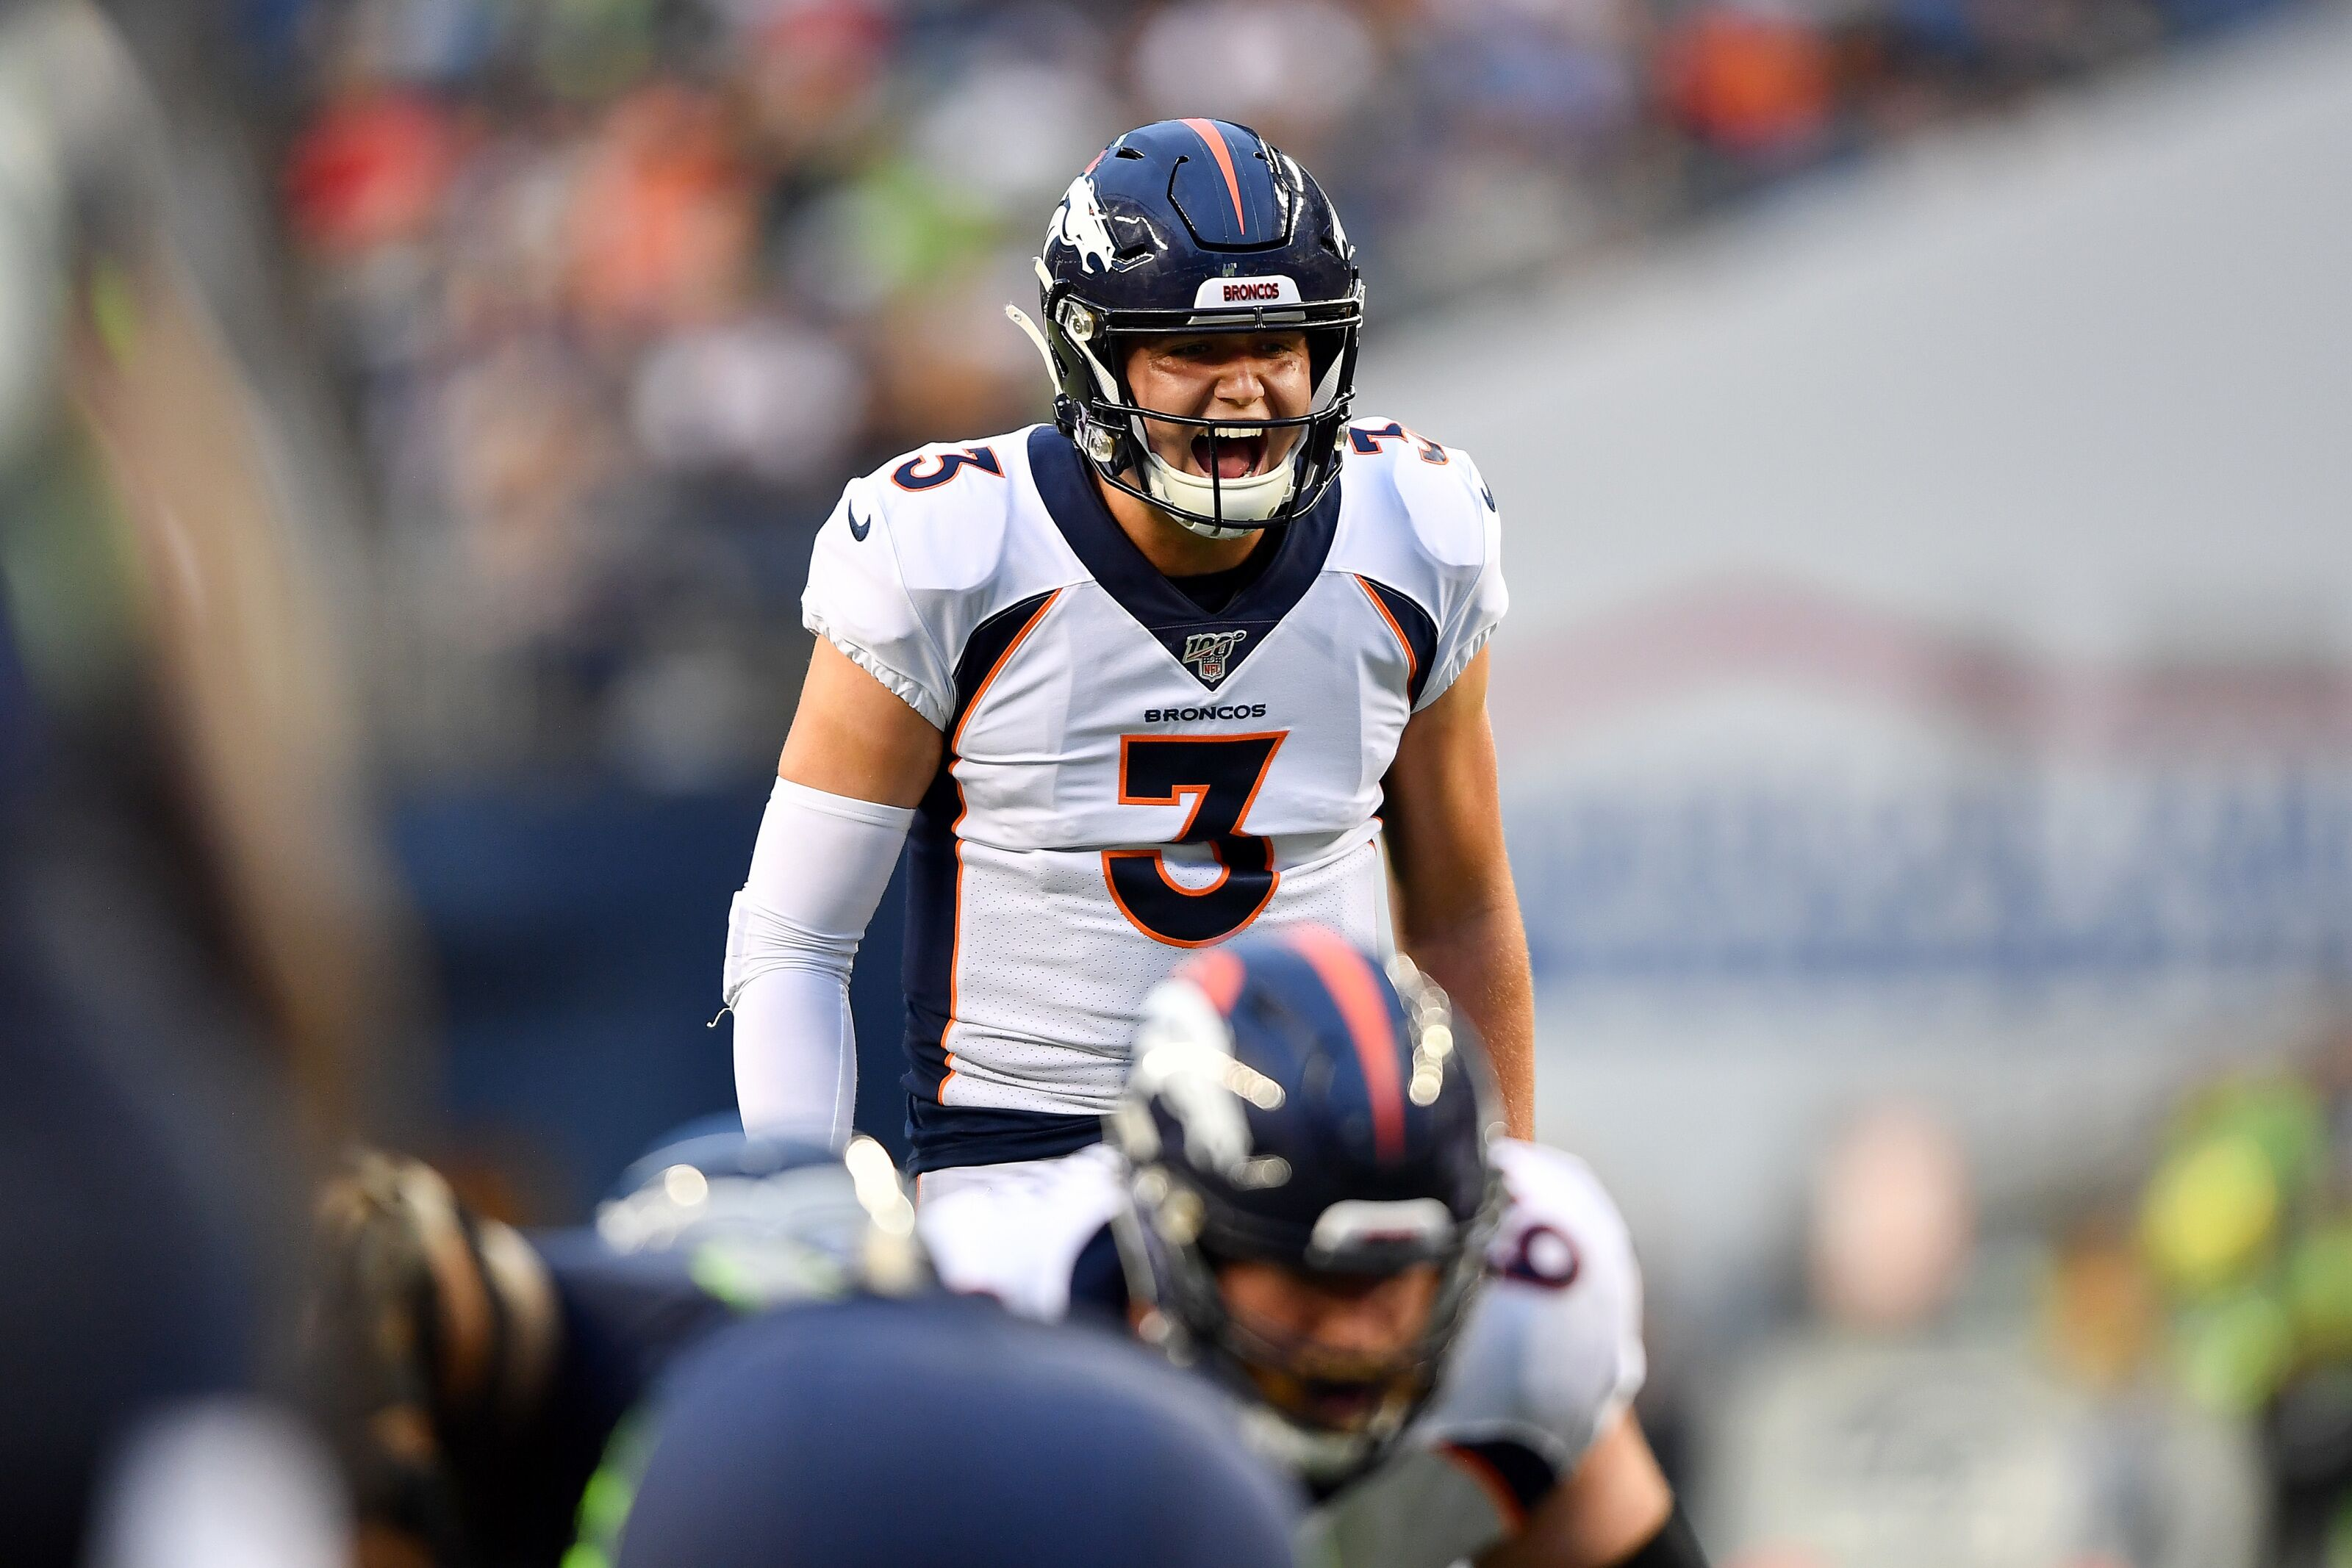 Denver Broncos: Drew Lock quickly making his way to being the backup